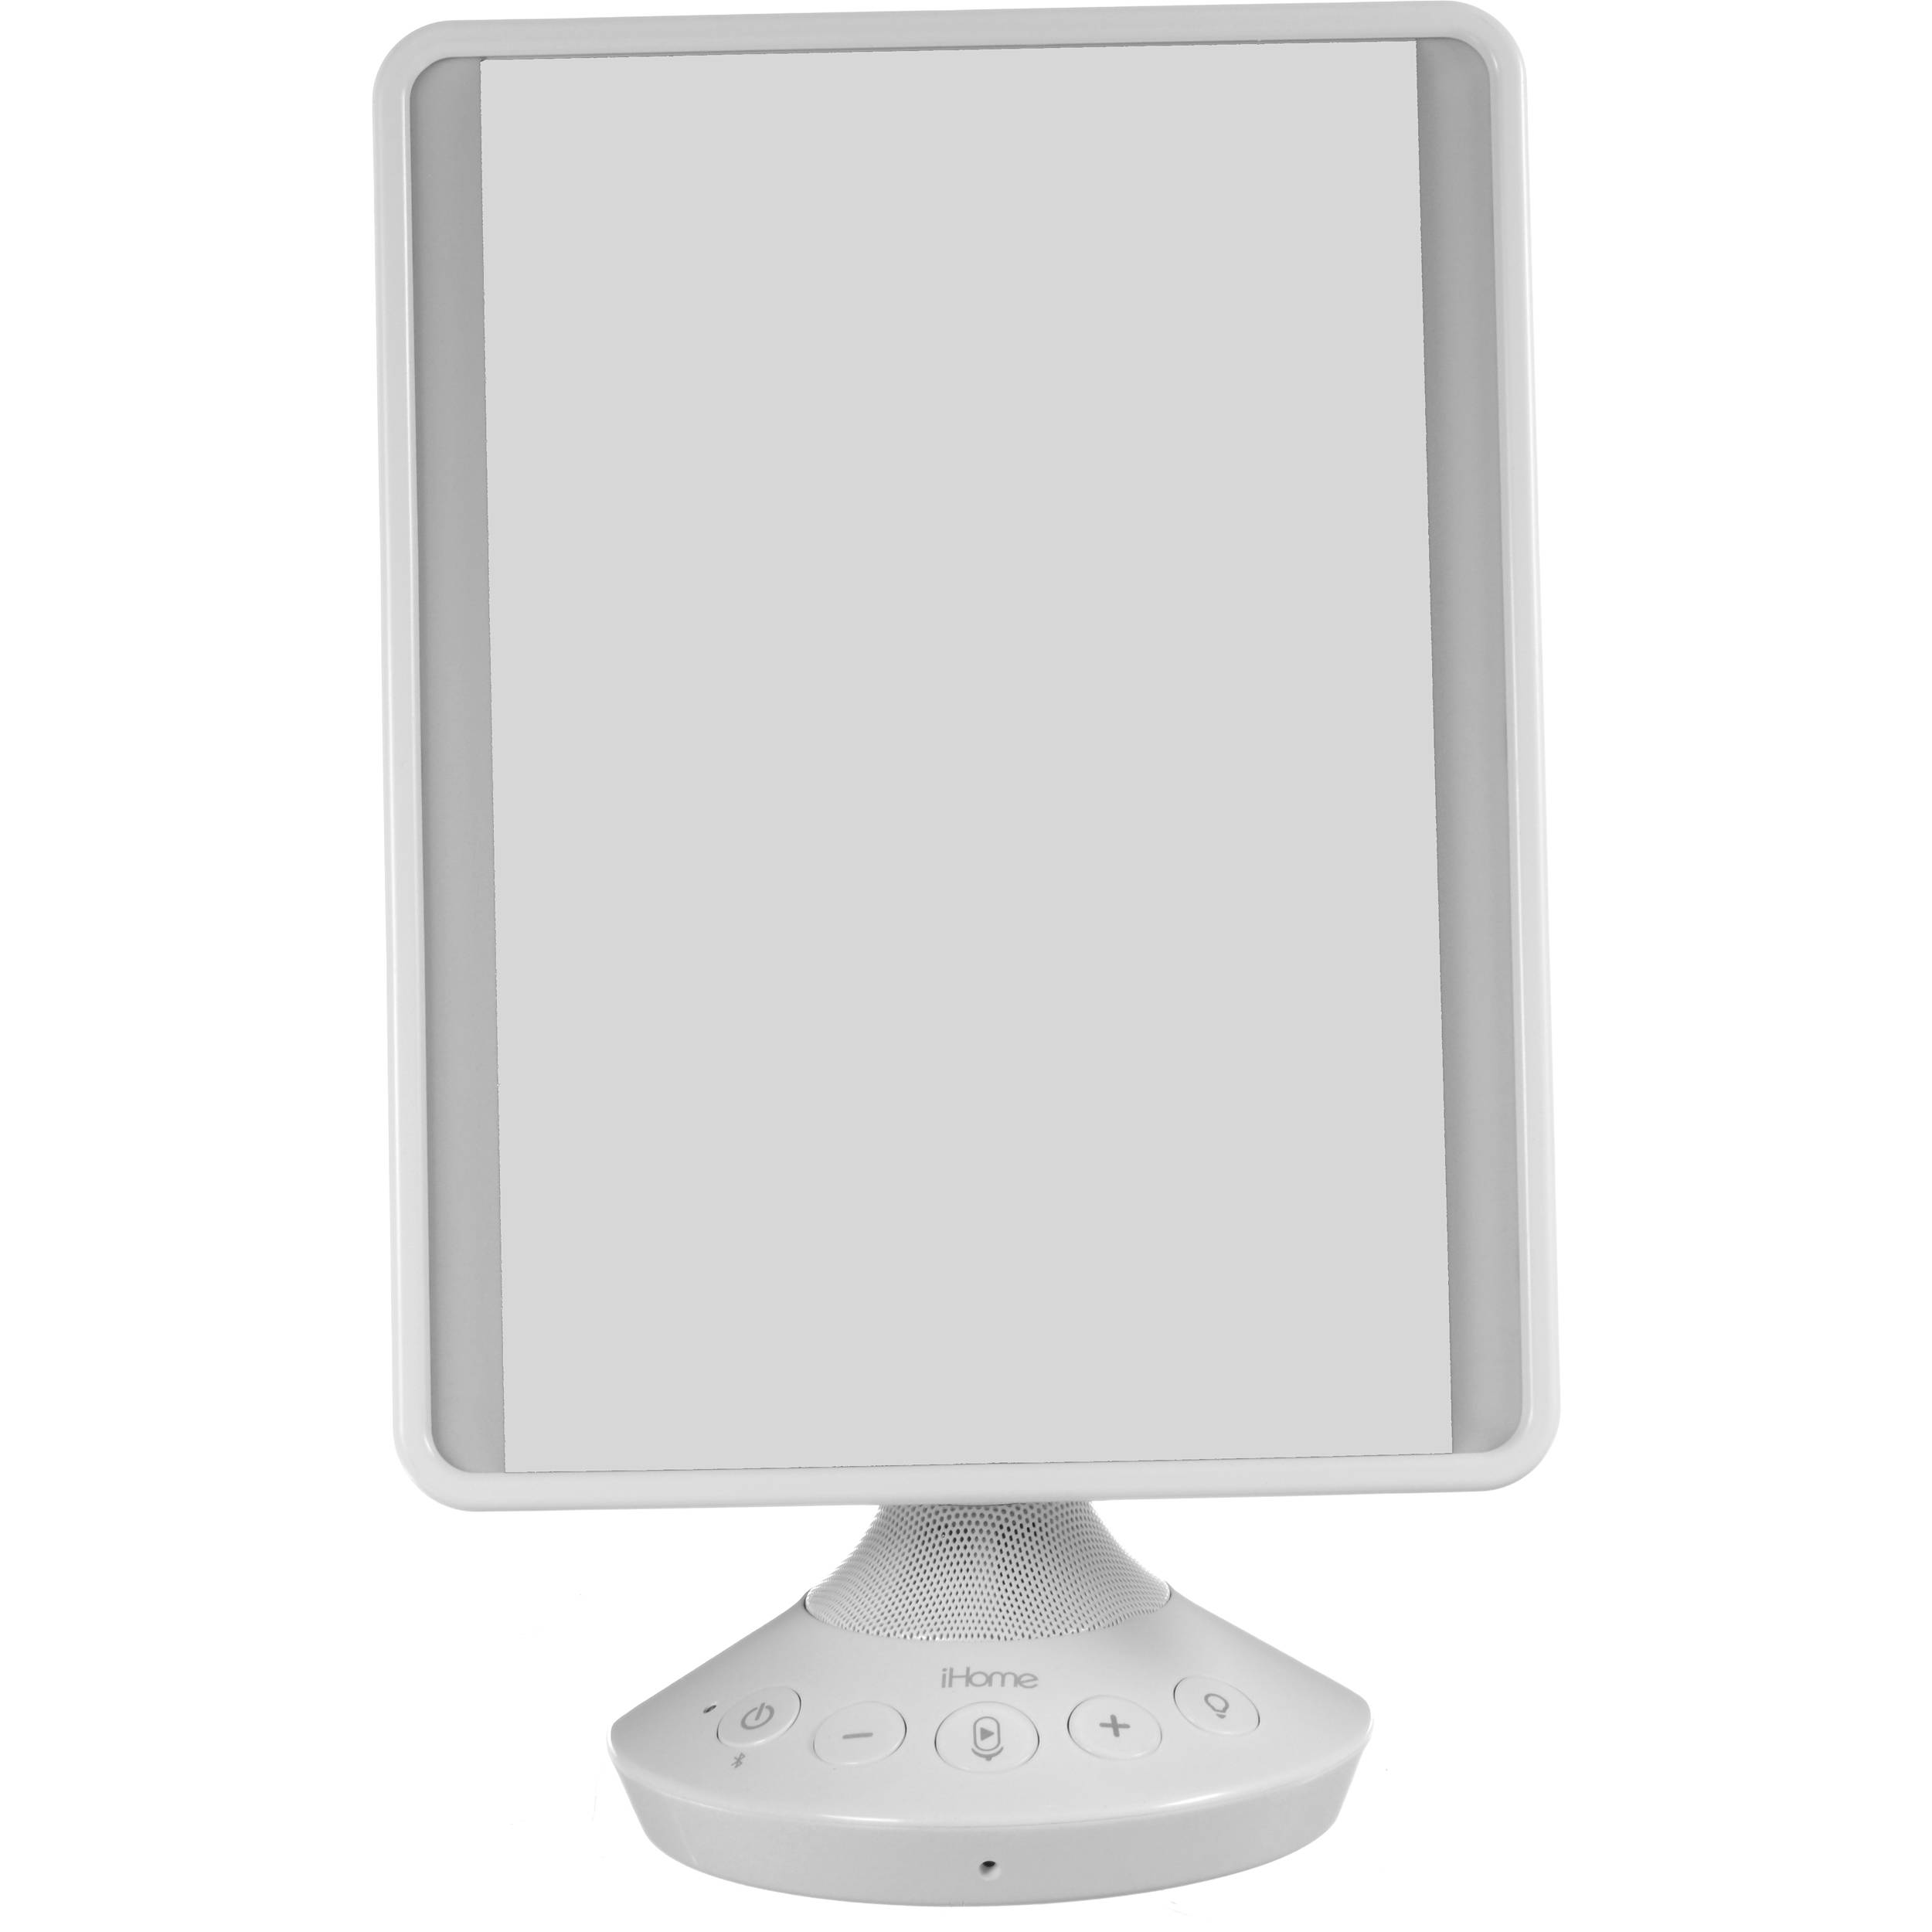 our to call frame kids with lights curls vintage can you very introducing broadway or hollywood it even hollywoodbroadway own mirror cheapskate vanity